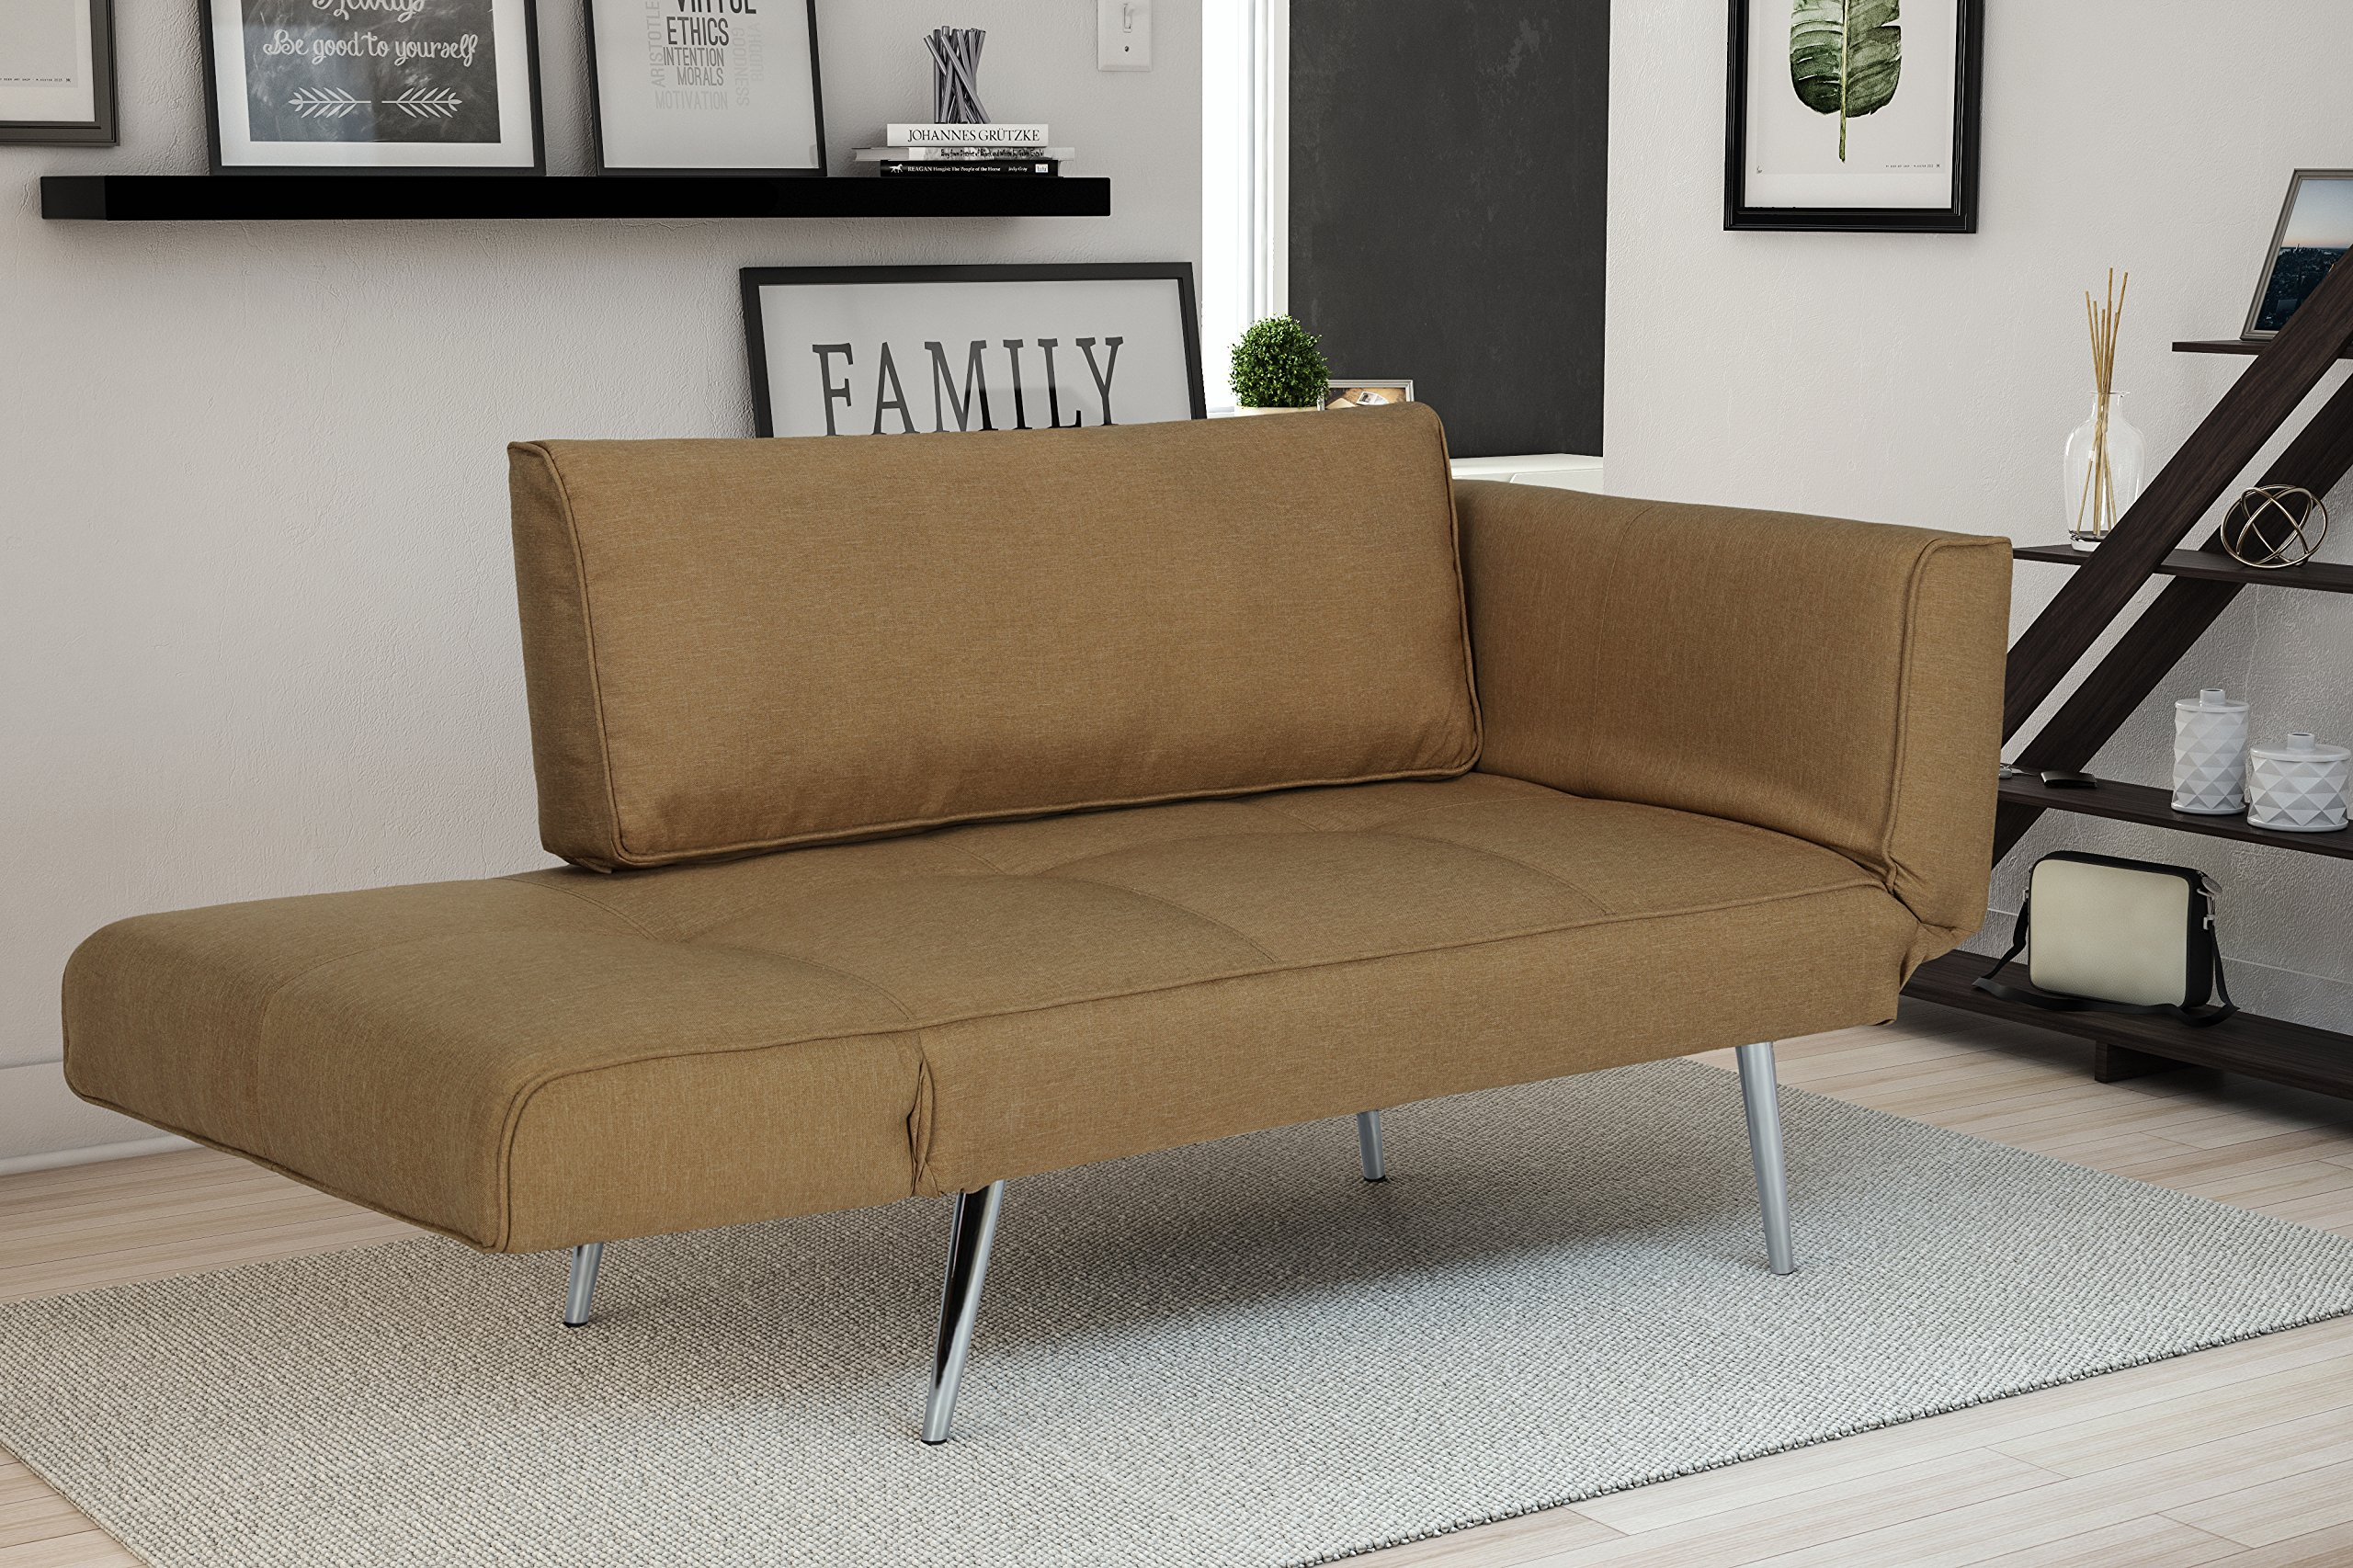 DHP Euro Sofa Futon Loveseat with Chrome Legs and Adjustable Armrests - Tan by DHP (Image #4)